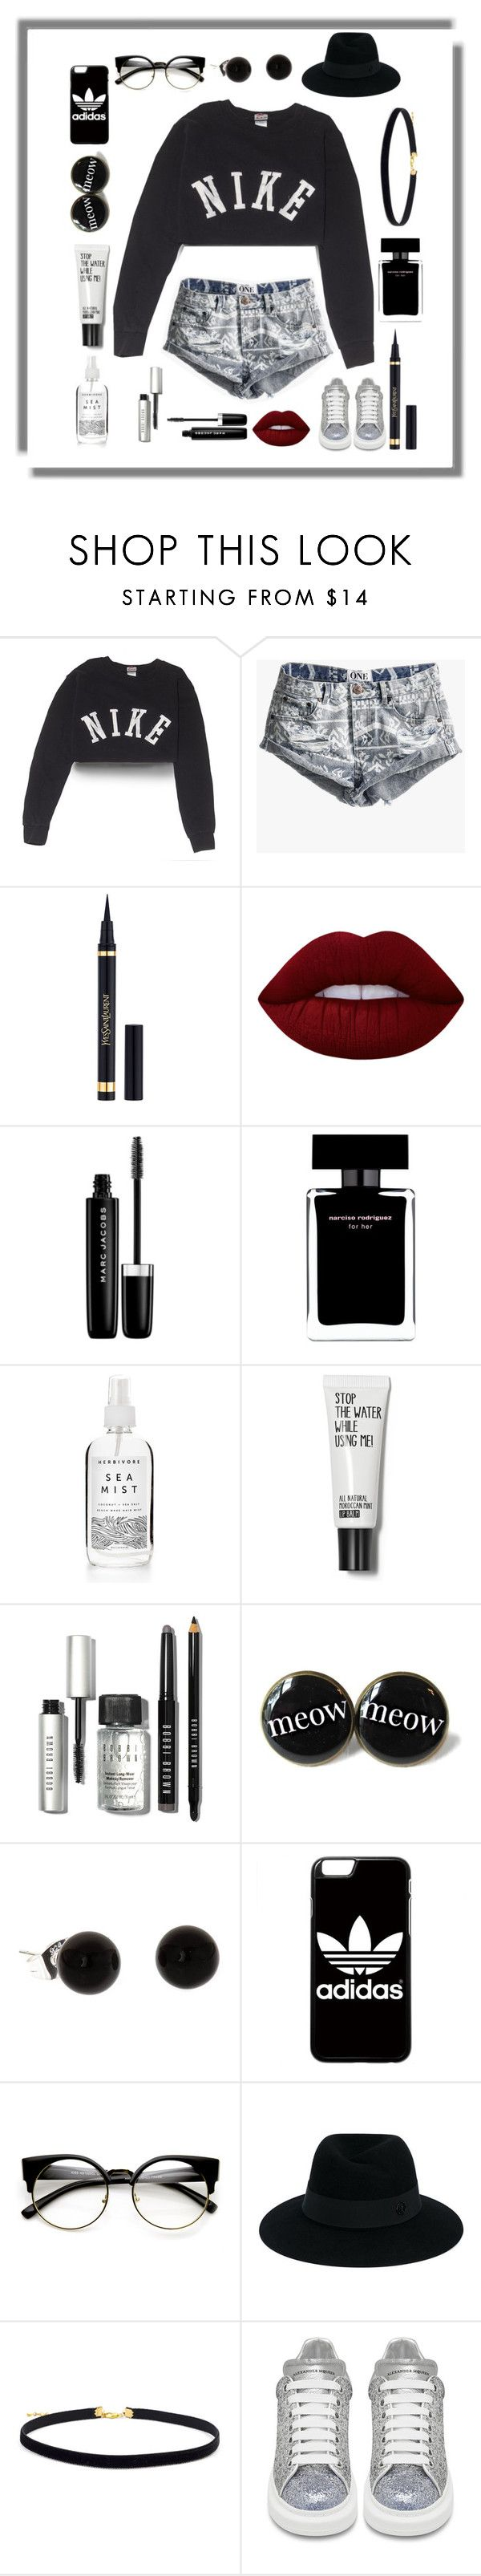 """With the pony you blonde "" by seniora ❤ liked on Polyvore featuring NIKE, One Teaspoon, Yves Saint Laurent, Lime Crime, Marc Jacobs, Narciso Rodriguez, Bobbi Brown Cosmetics, adidas, Maison Michel and Alexander McQueen"